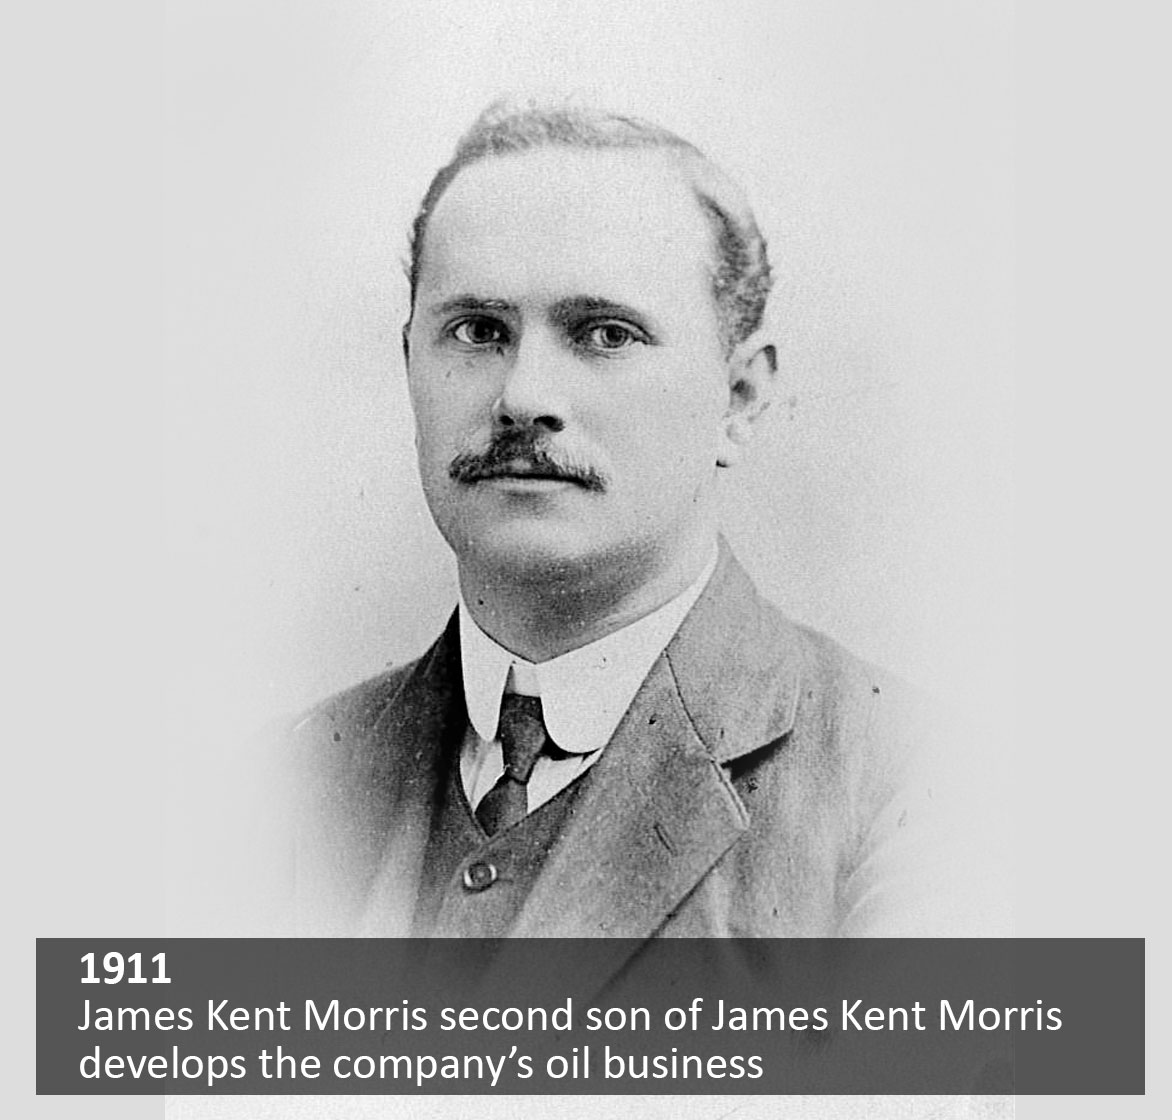 James Kent Morris, second son of James Kent Morris develops the company's oil business